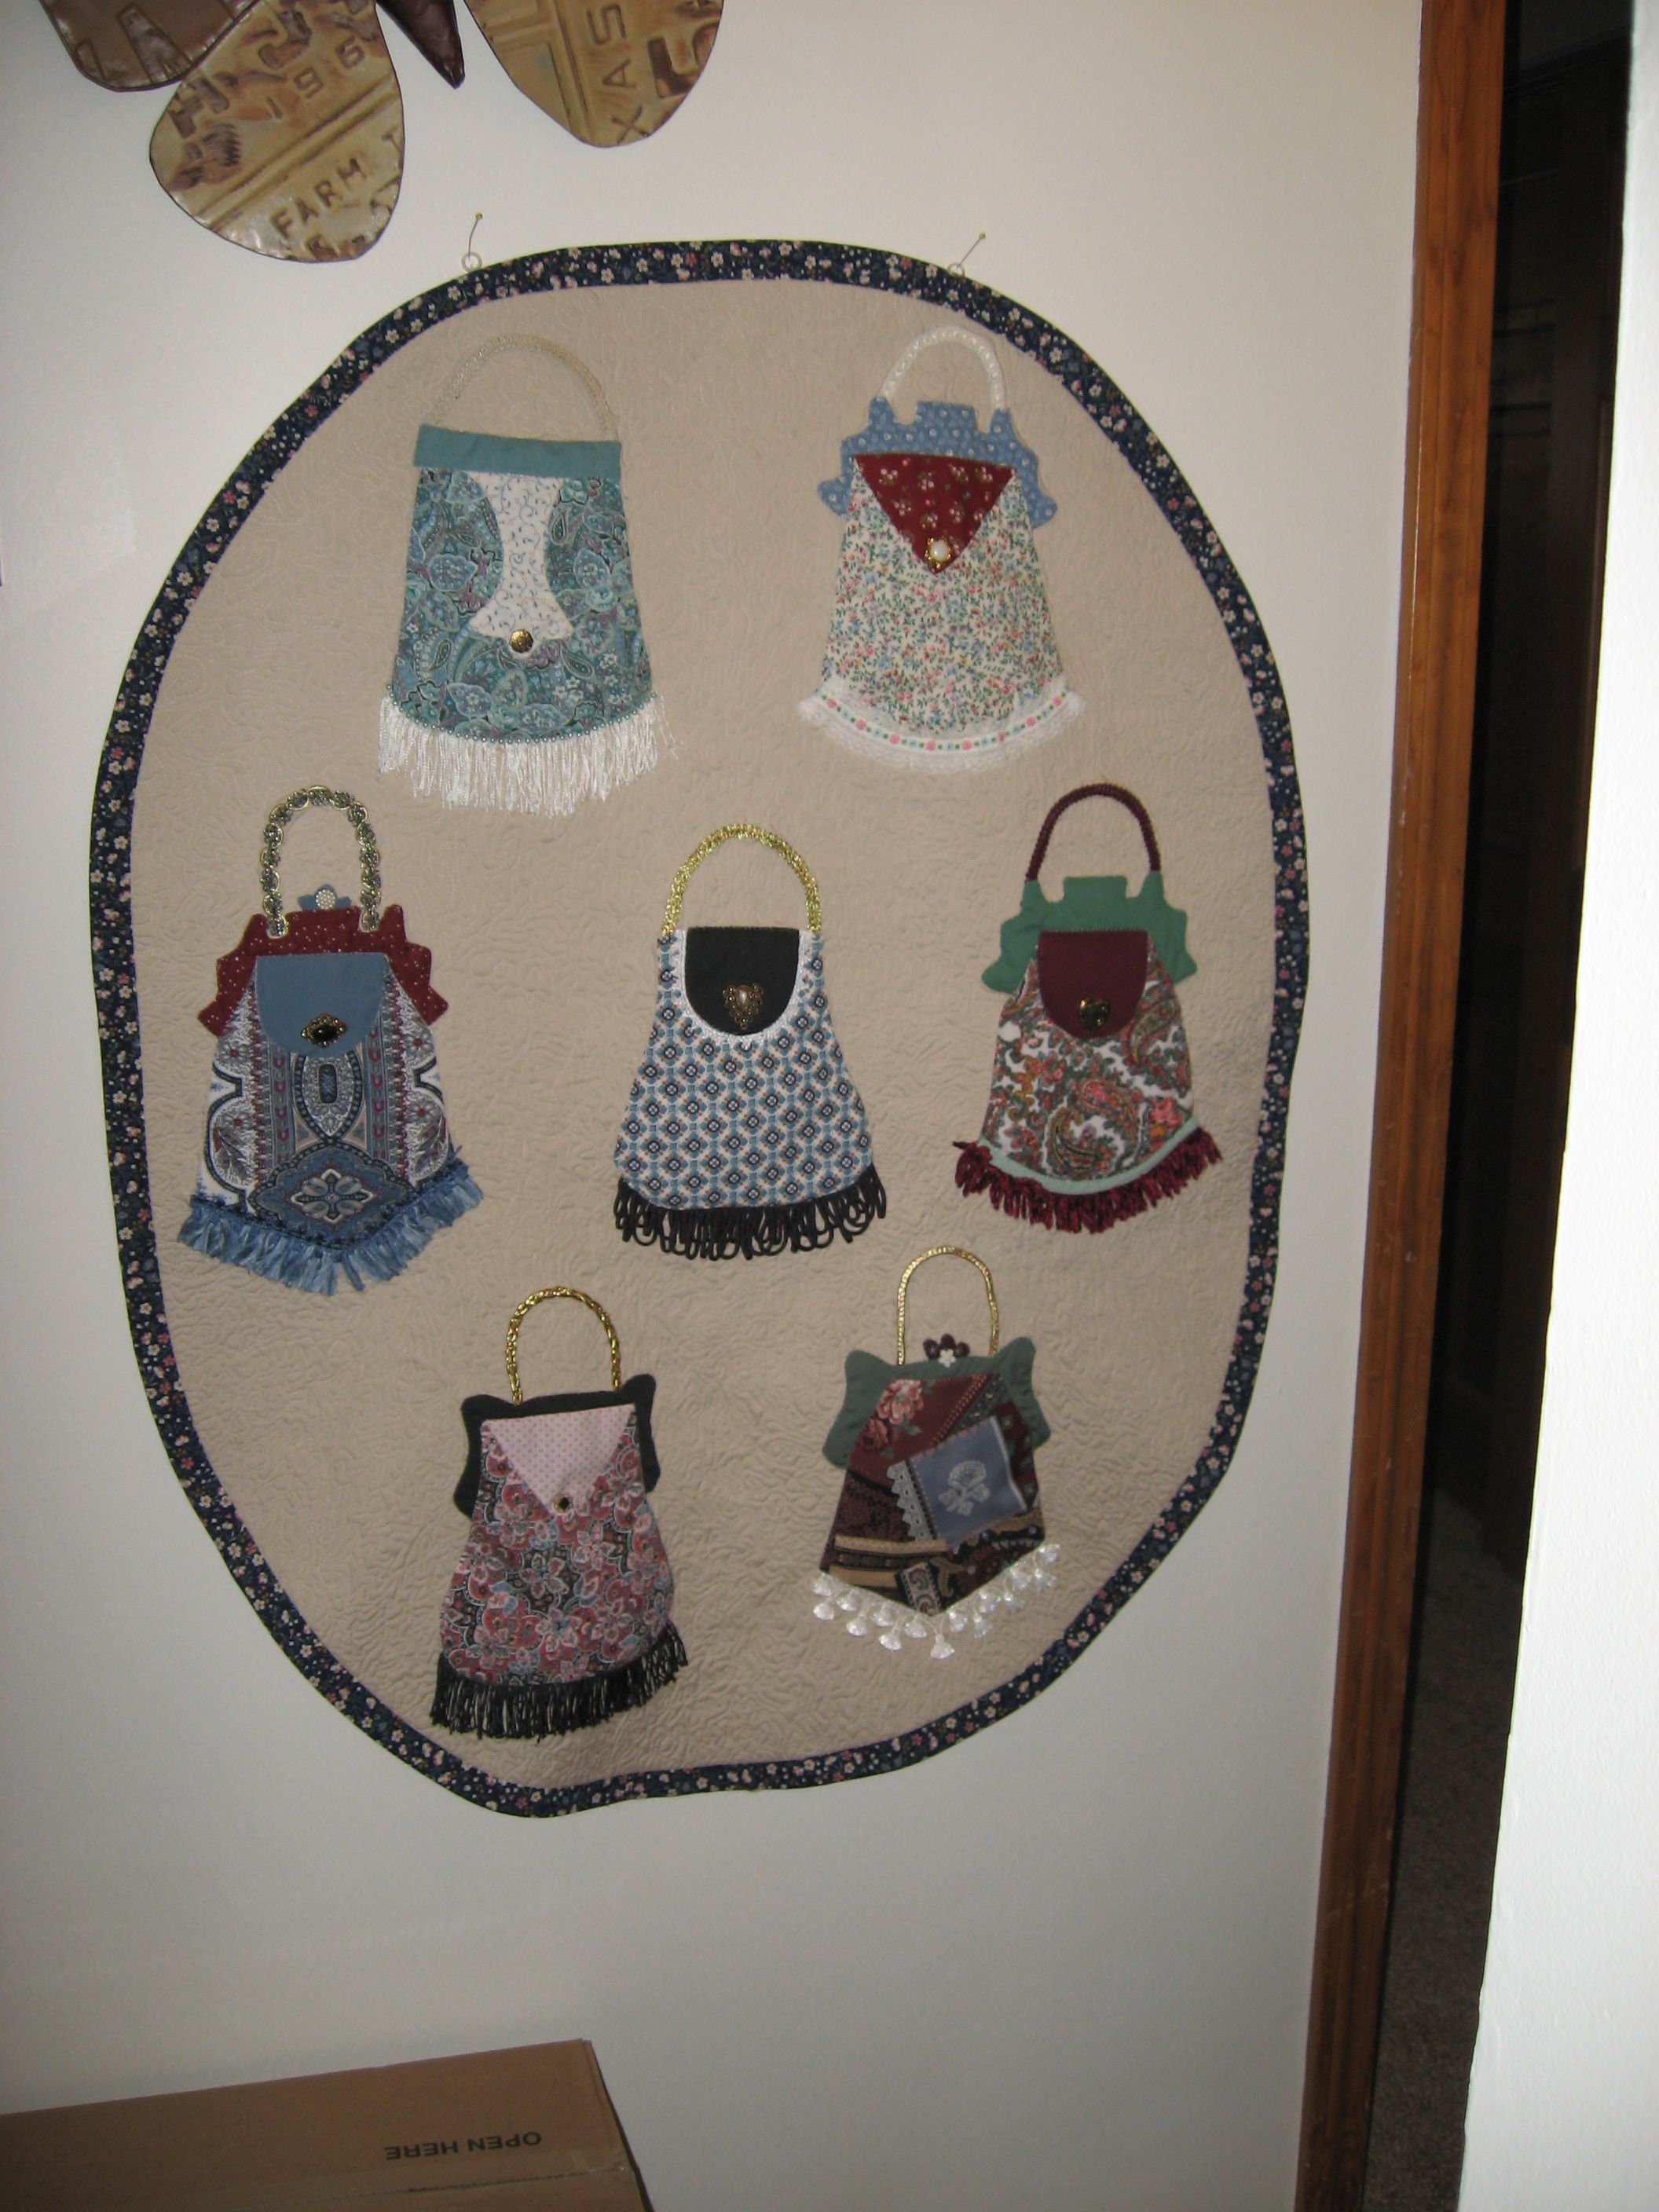 Purses quilted wall hanging I made. Recycled the purses from a jean jumper I had put them on years ago.  Put all the work in and didn't want it to go to waste.